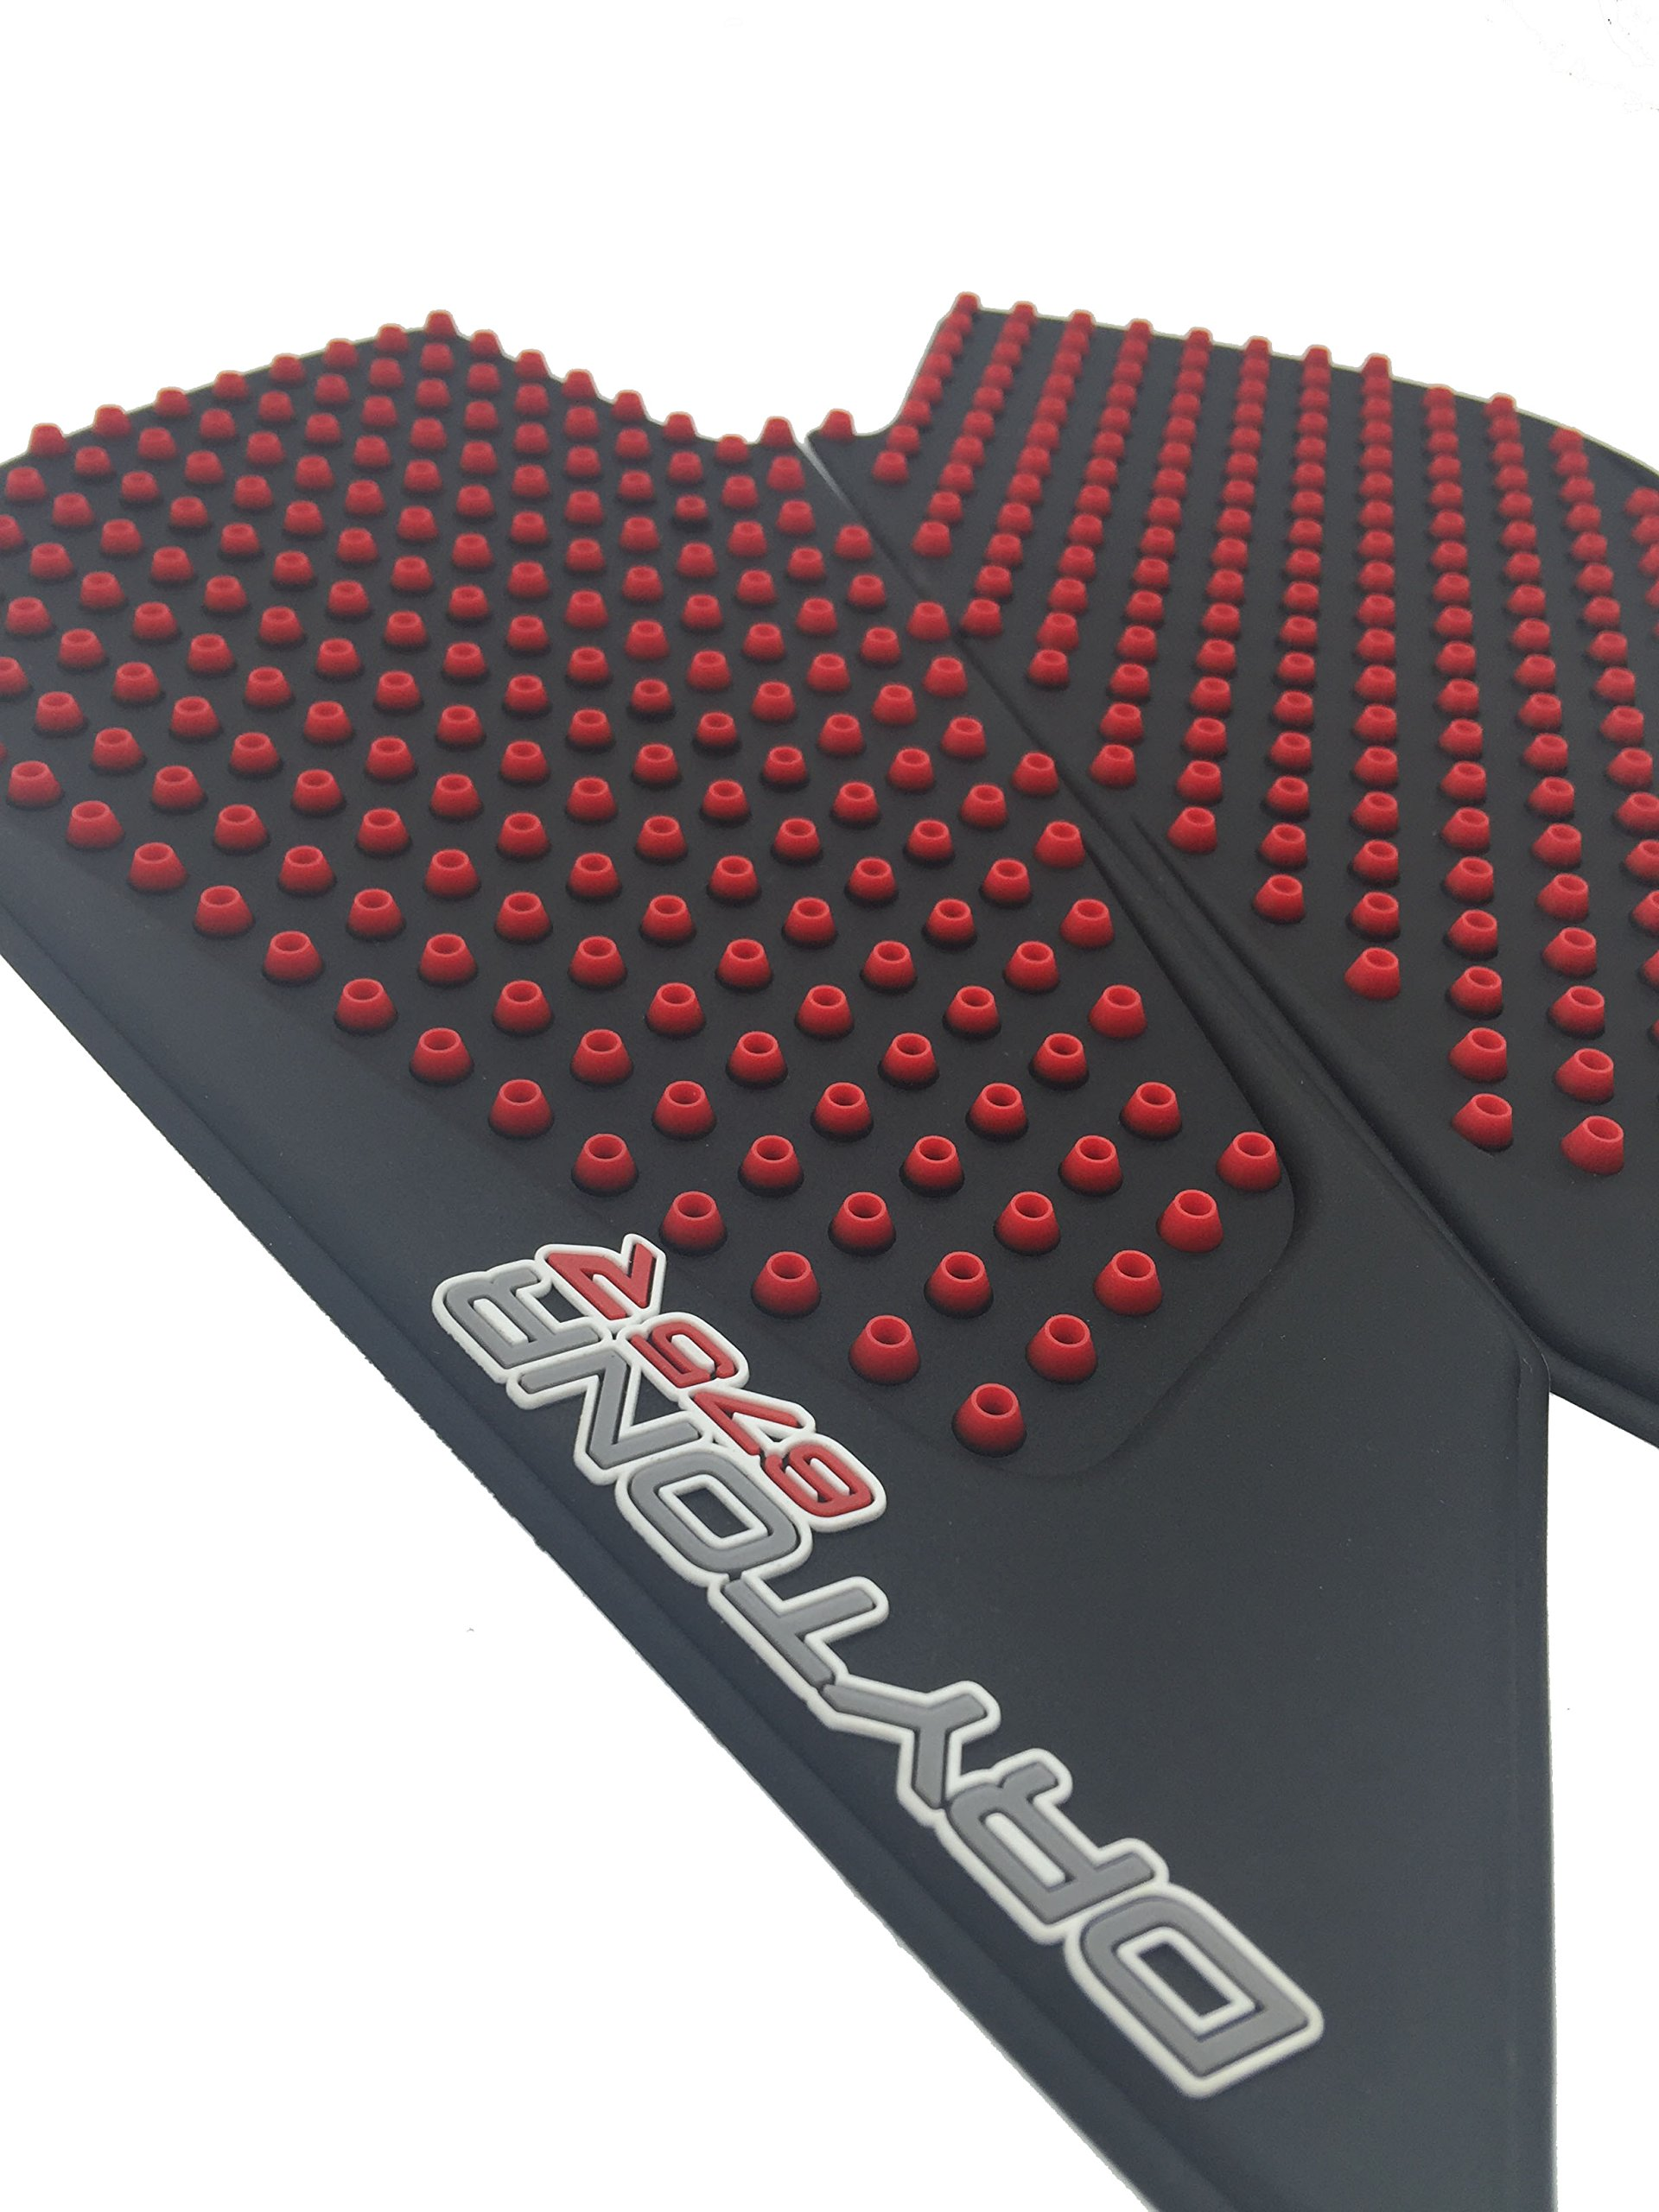 3D Red Dots Gas Fuel Tank Traction Pad Anti Side Slip Protector For Triumph DayTonr 675R 11-16 by primitive man (Image #2)